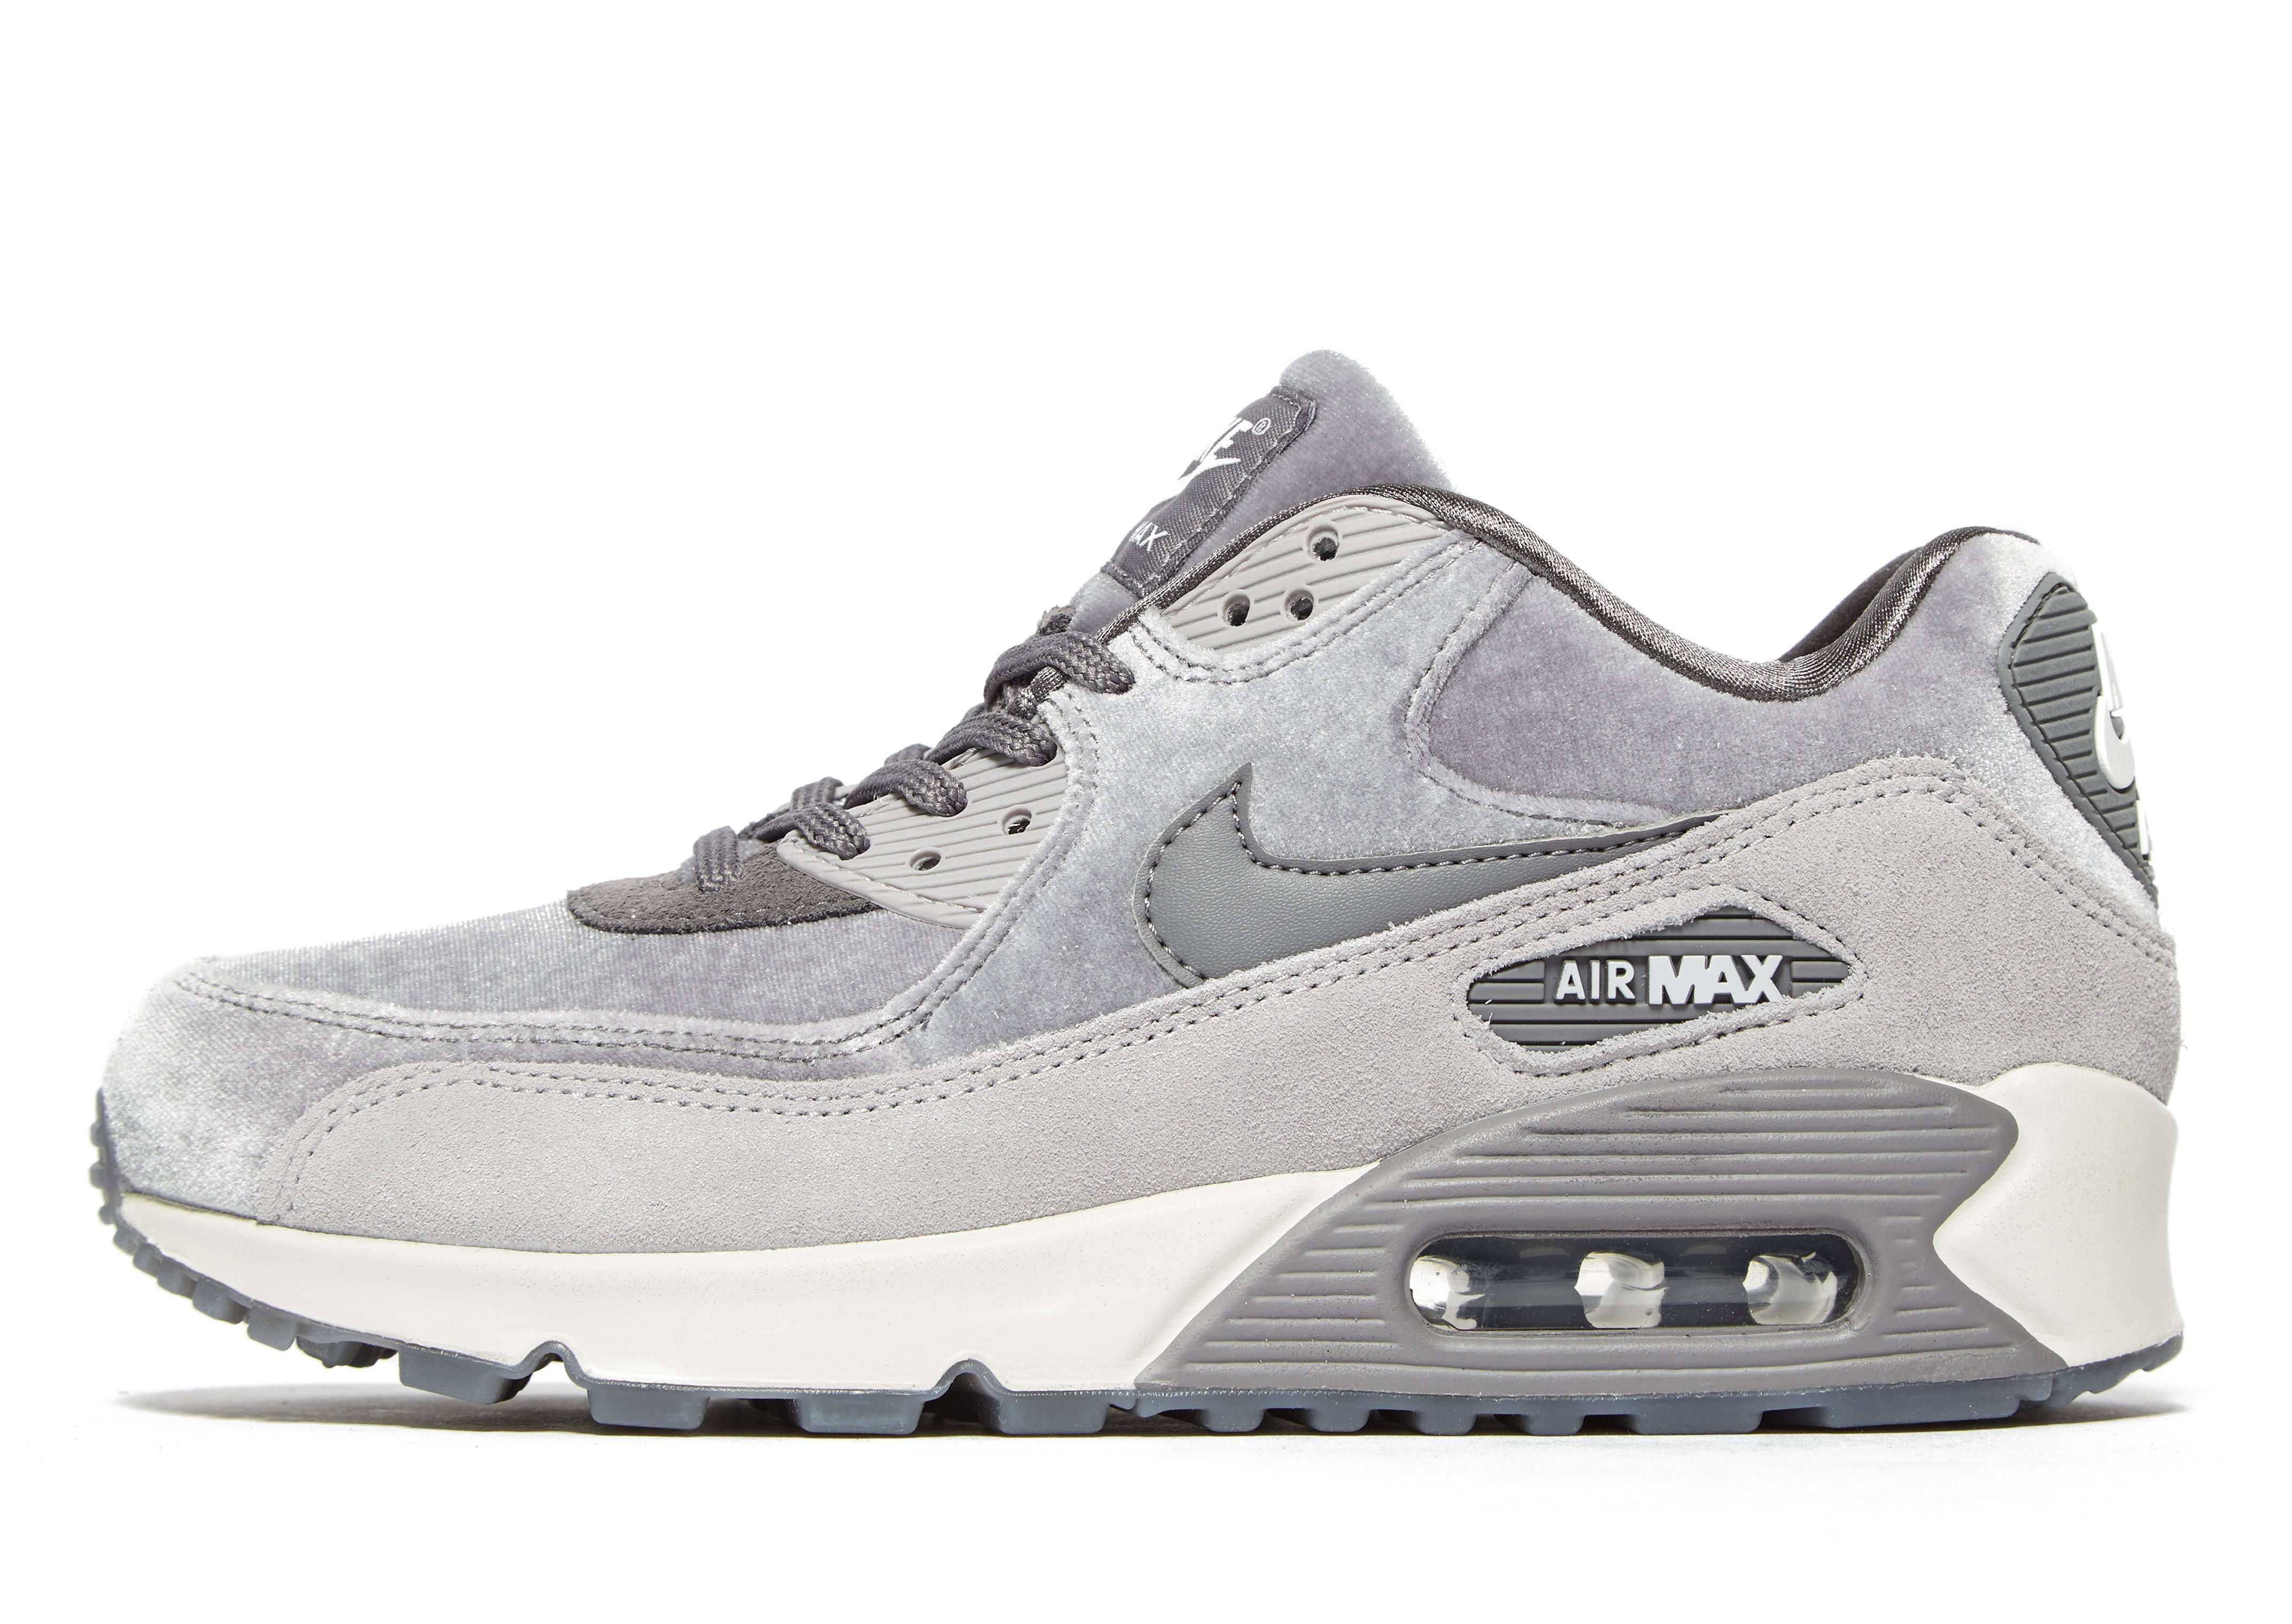 best service 3e9f2 61654 Nike Air Max 90 Women's - Shop online for Nike Air Max 90 ...